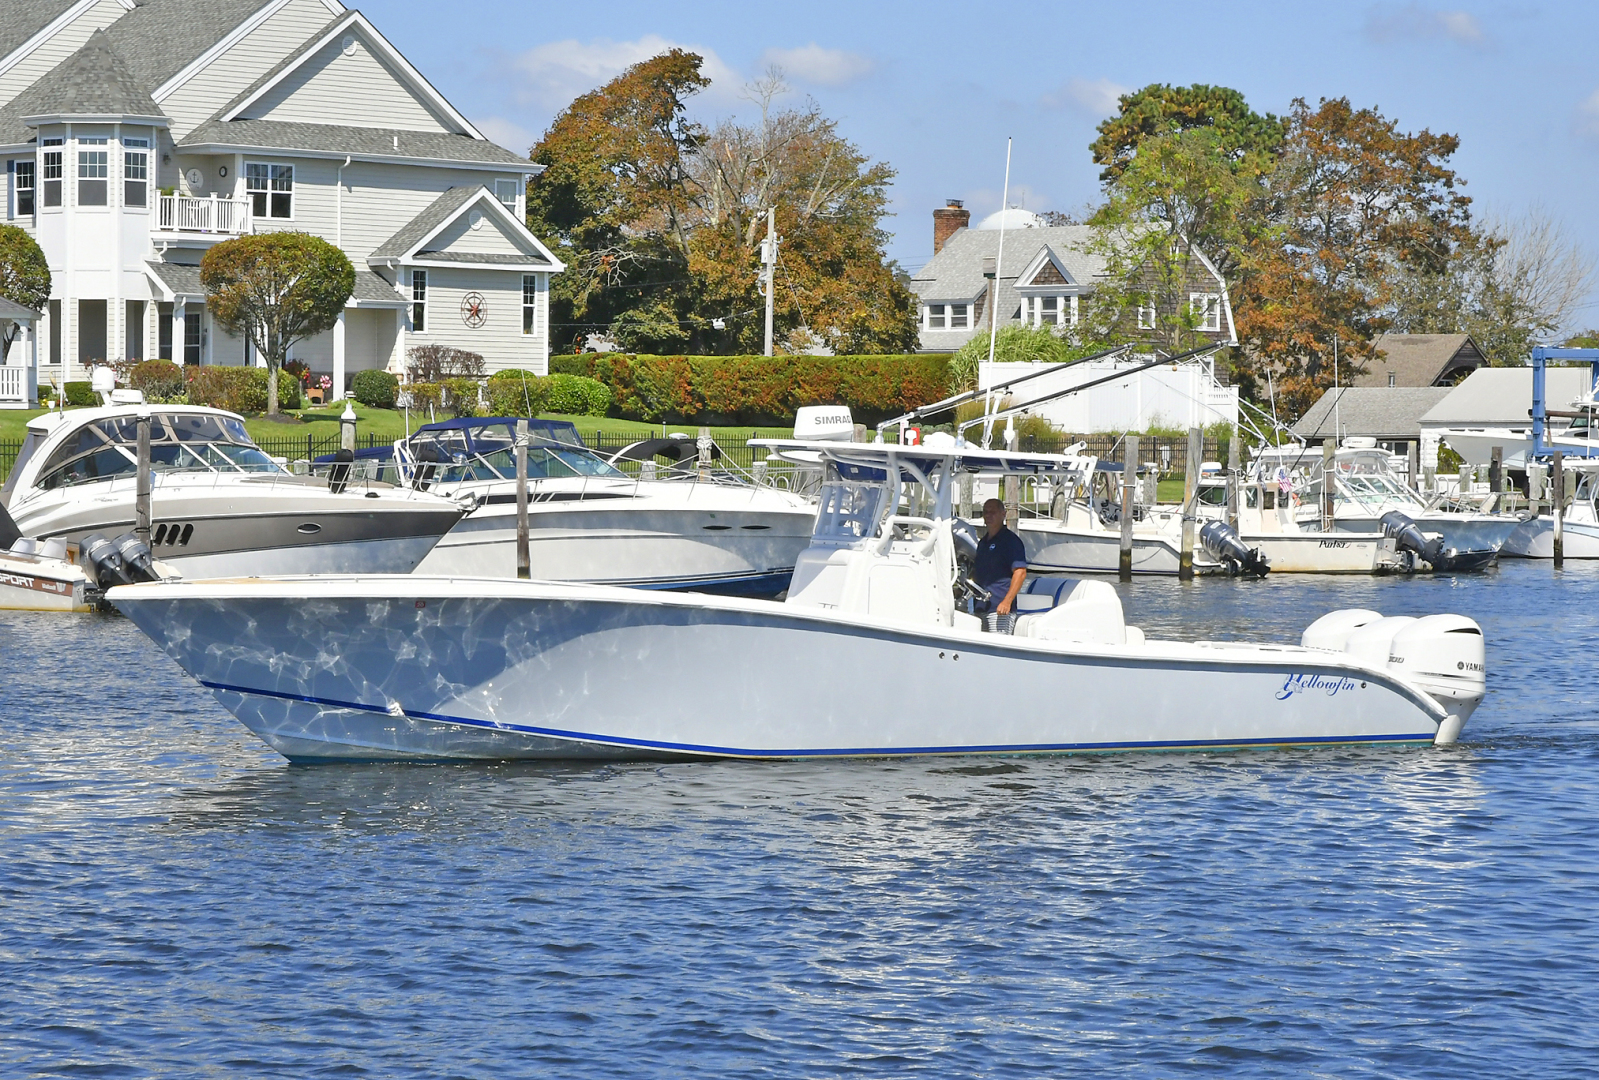 Yellowfin-36 Center Console 2019 -Patchogue-New York-United States-Port Side-1468837 | Thumbnail